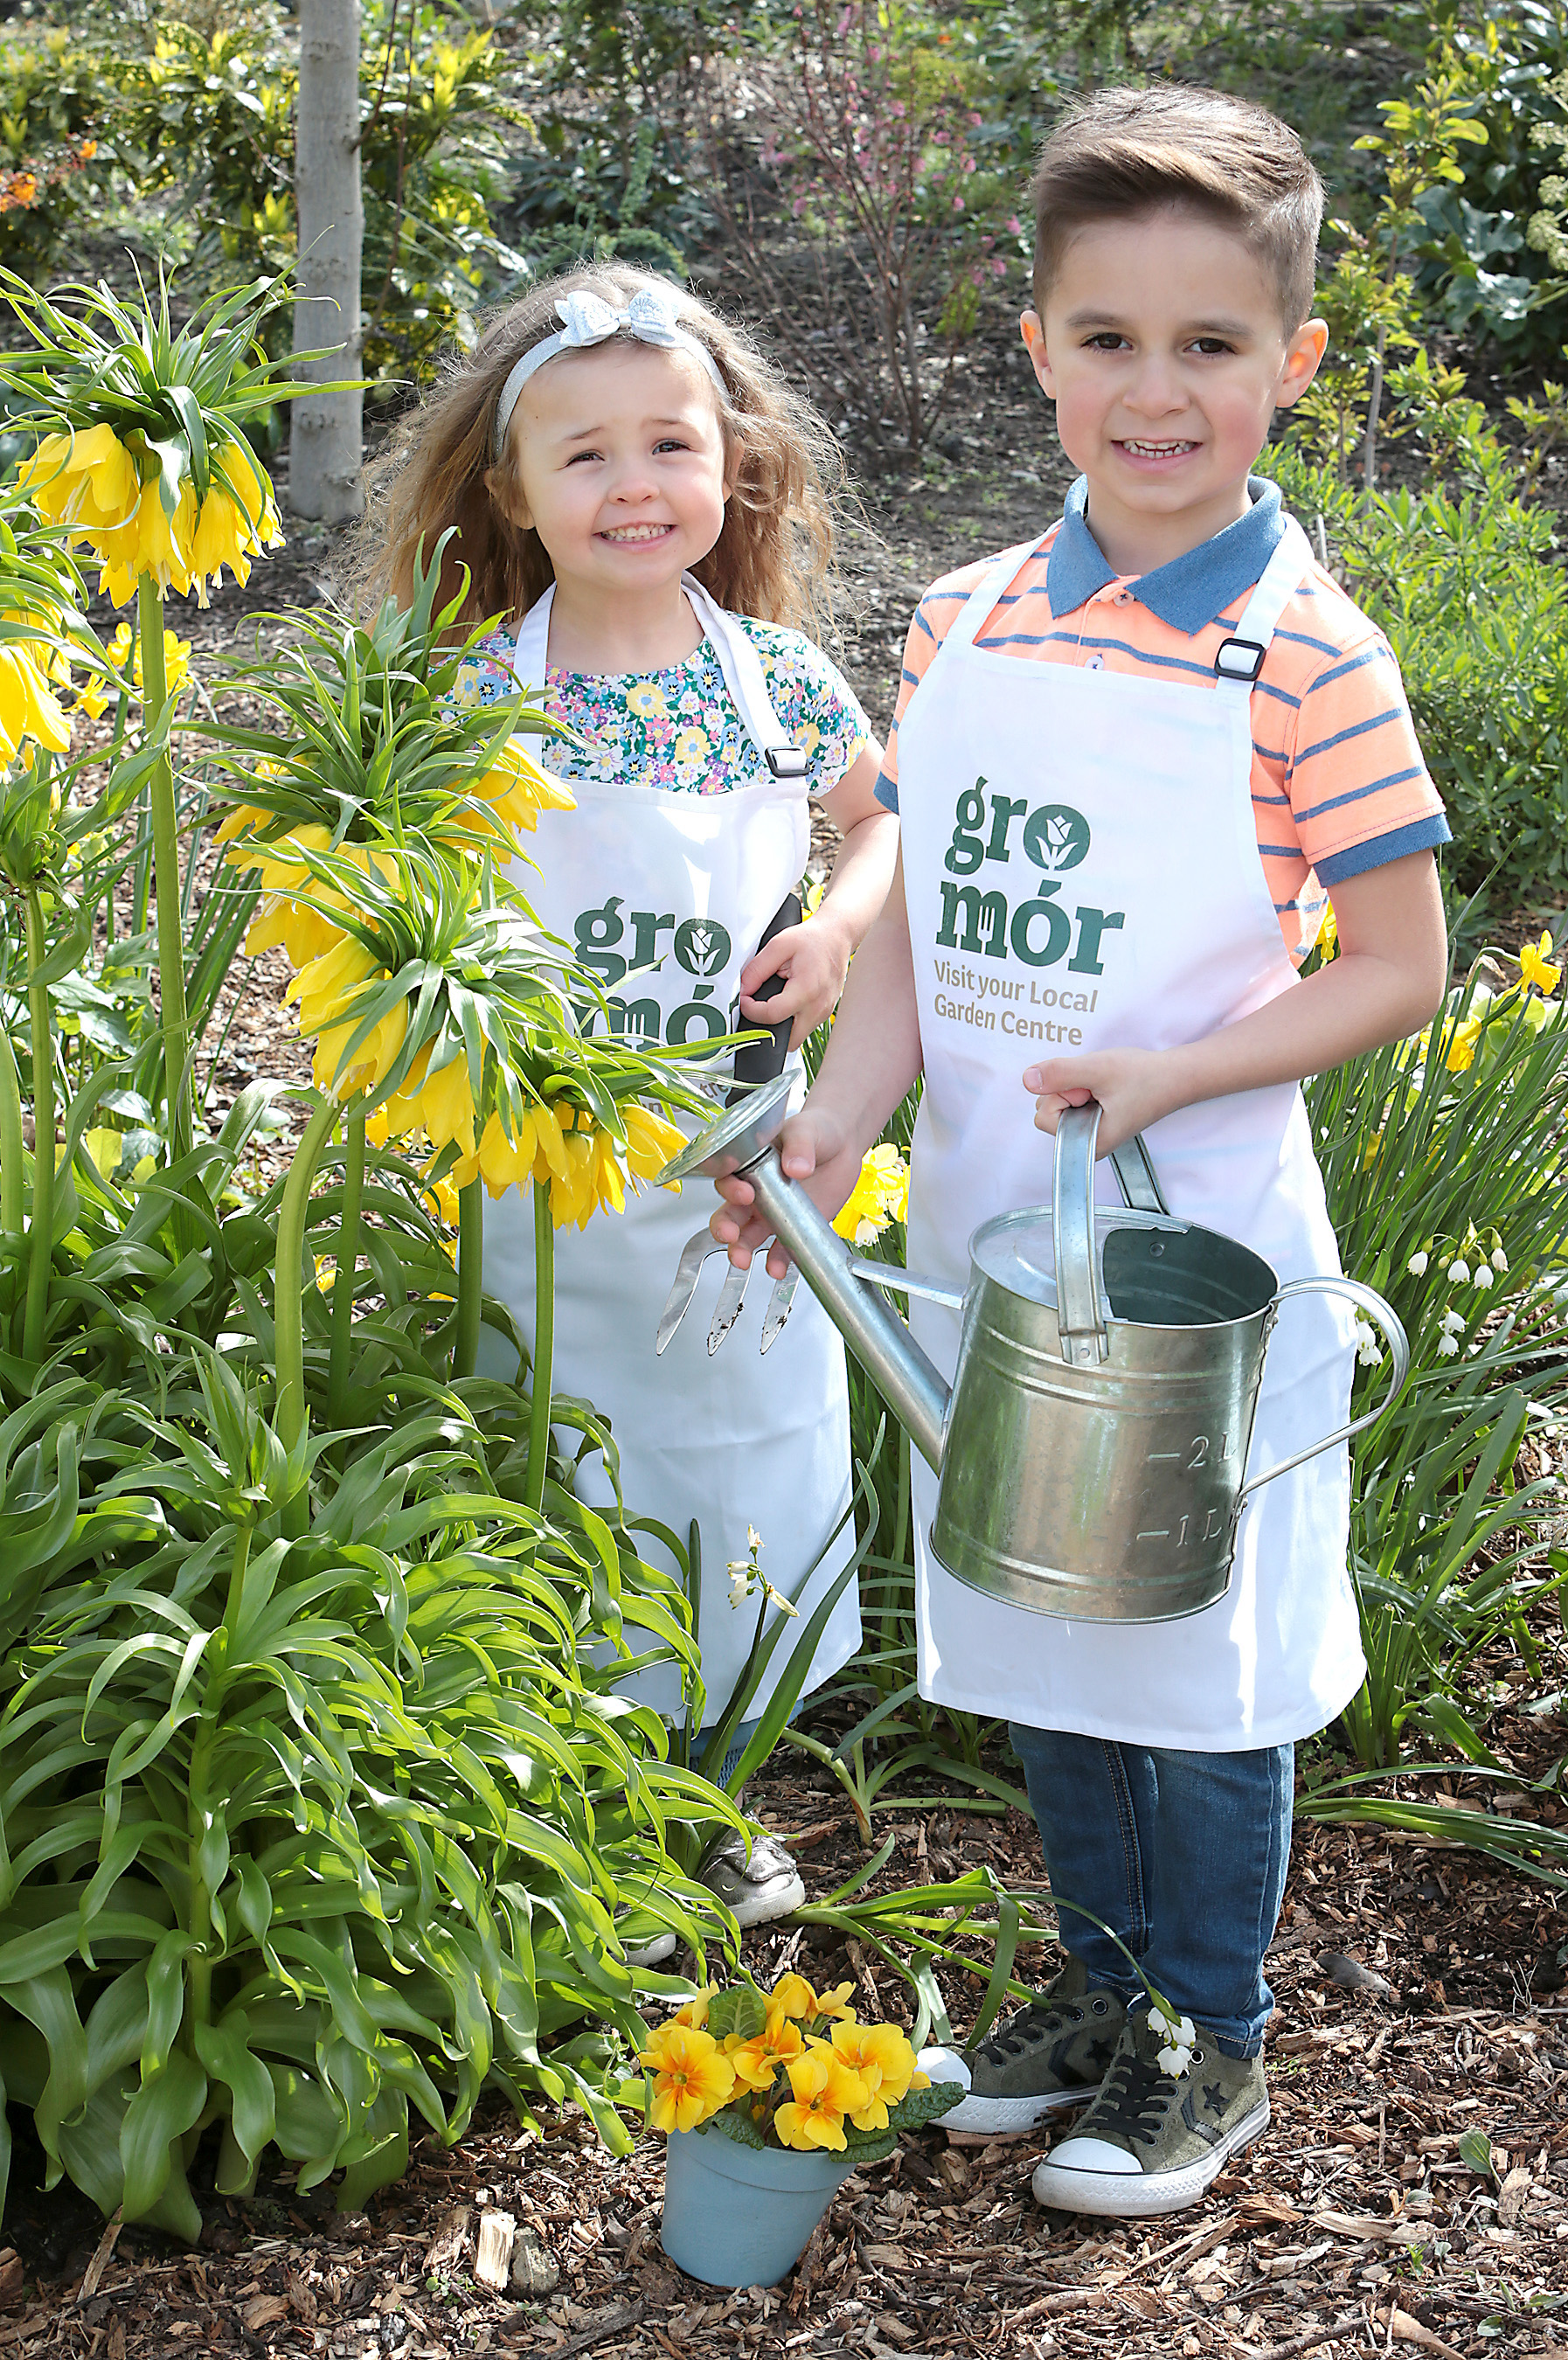 Amy Dempsey aged 4  and Gianluca Bux aged 5 as they celebrated the arrival of spring and the launch of GroMór 2019 - encouraging everyone to visit their local garden centres and nurseries, buy Irish plants and get growing!        Pic Brian McEvoy No Repro fee for one use              GroMór is an initiative by Bord Bia in association with Retail Excellence Ireland, promoting its 62 local garden centres and nurseries located across the country. These centres have an extensive selection of plants along with qualified staff, who are available to offer free expert advice to people in all age groups from novices and new homeowners to experienced gardeners.   Discover your green fingers simply grab a trowel and uncover the beauty and mystery of the garden.  GroMór 2019 has two key themes that will focus on the seasonal plants with 'Garden Colour' across April and May and then 'Container Garden' from June onwards. April is the month when spring really starts to arrive and with the advice of GroMór ambassador Gary Graham, comes the opportunity to create your own super garden this summer! For anyone looking for advice or easy to follow guides and videos on how to grow flowers, plants, herbs, trees and vegetables or to find your local garden centre or nursery visit, www.GroMór.ie . GroMór 2019 is sponsored by Bord na Móna and Westland Horticulture. www.GroMór.ie